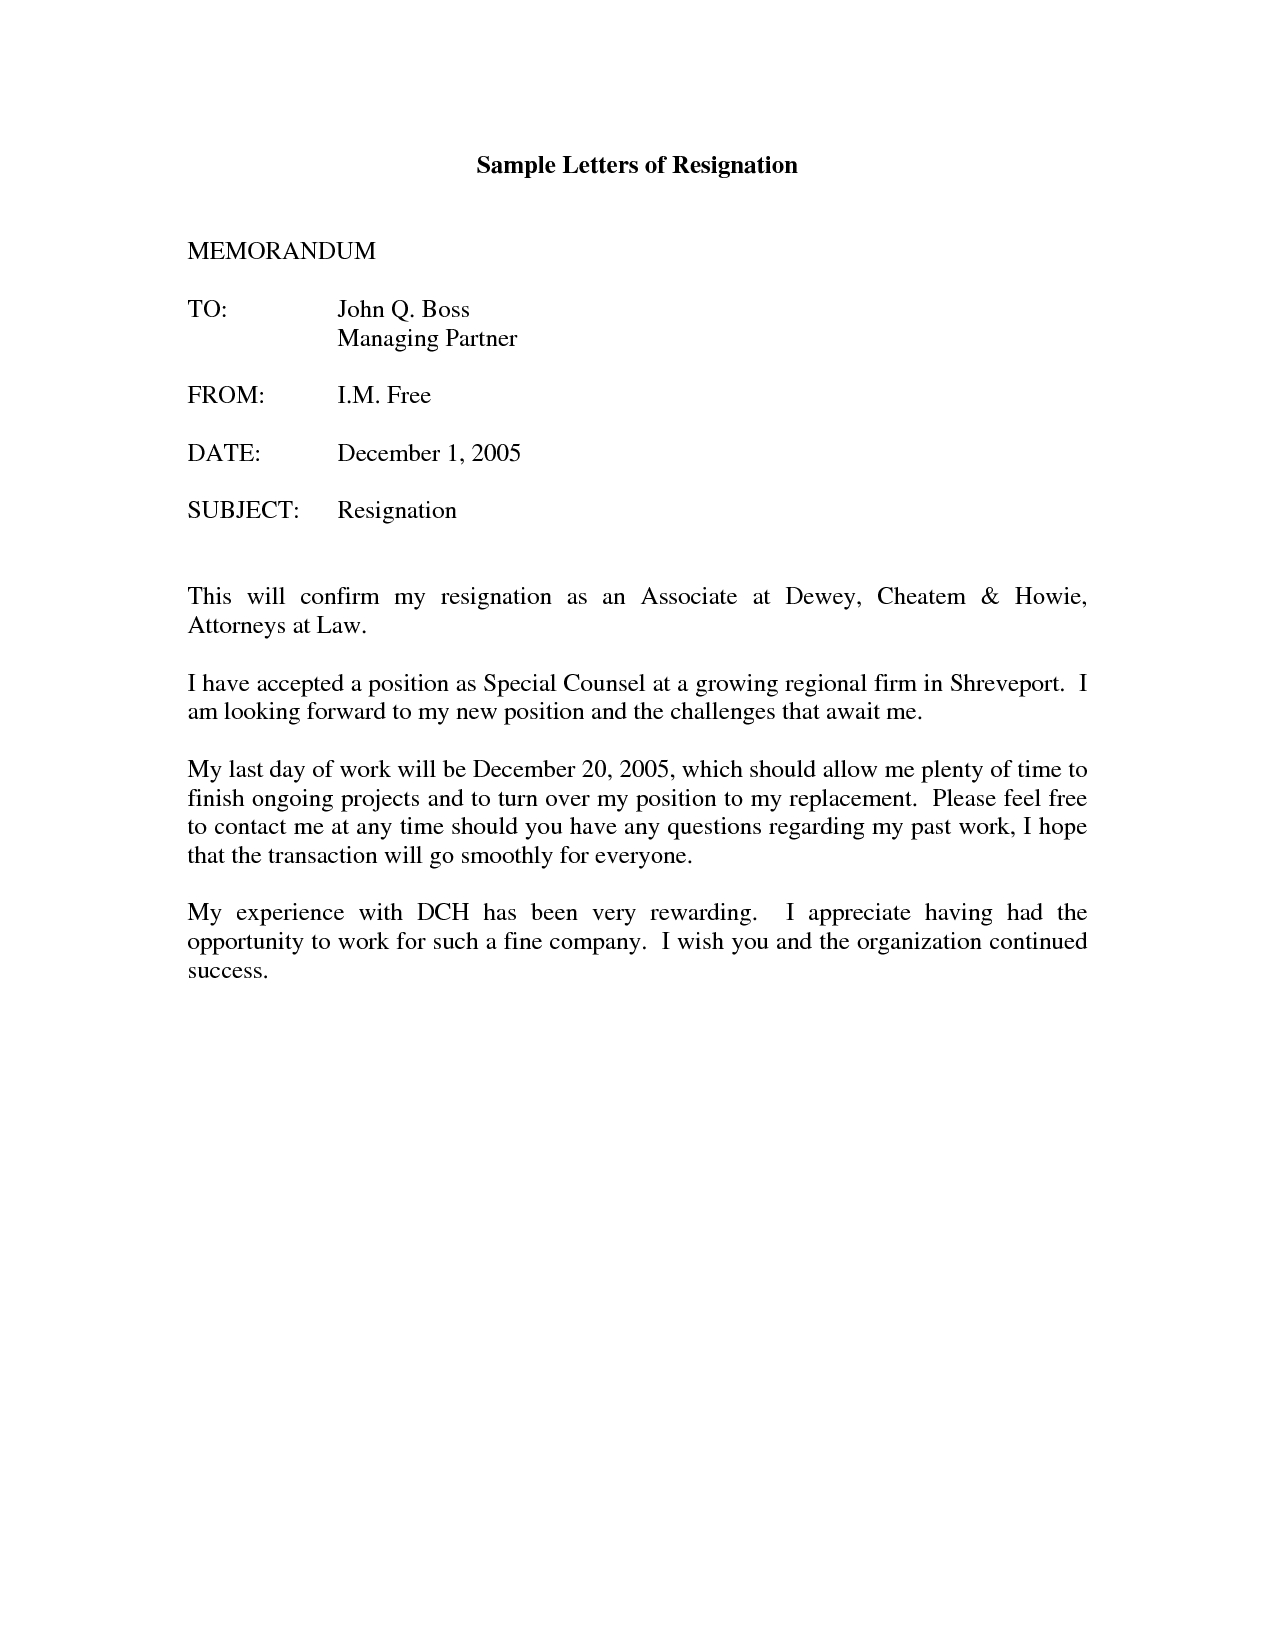 Official Letter Of Resignation Template - Printable Sample Letter Of Resignation form